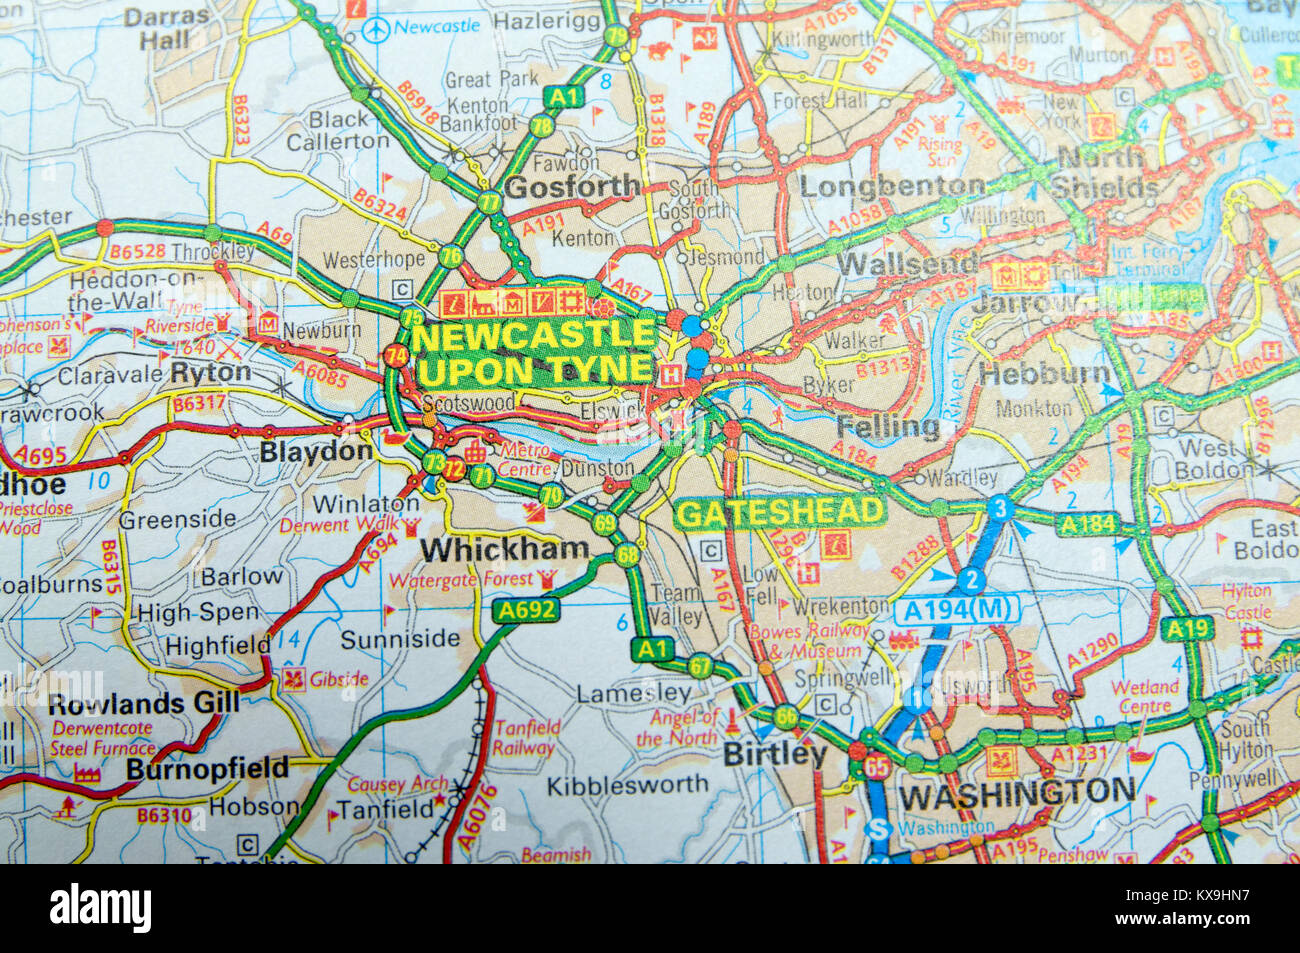 Map Of Newcastle Upon Tyne Road Map of Newcastle upon Tyne, England Stock Photo: 171085859